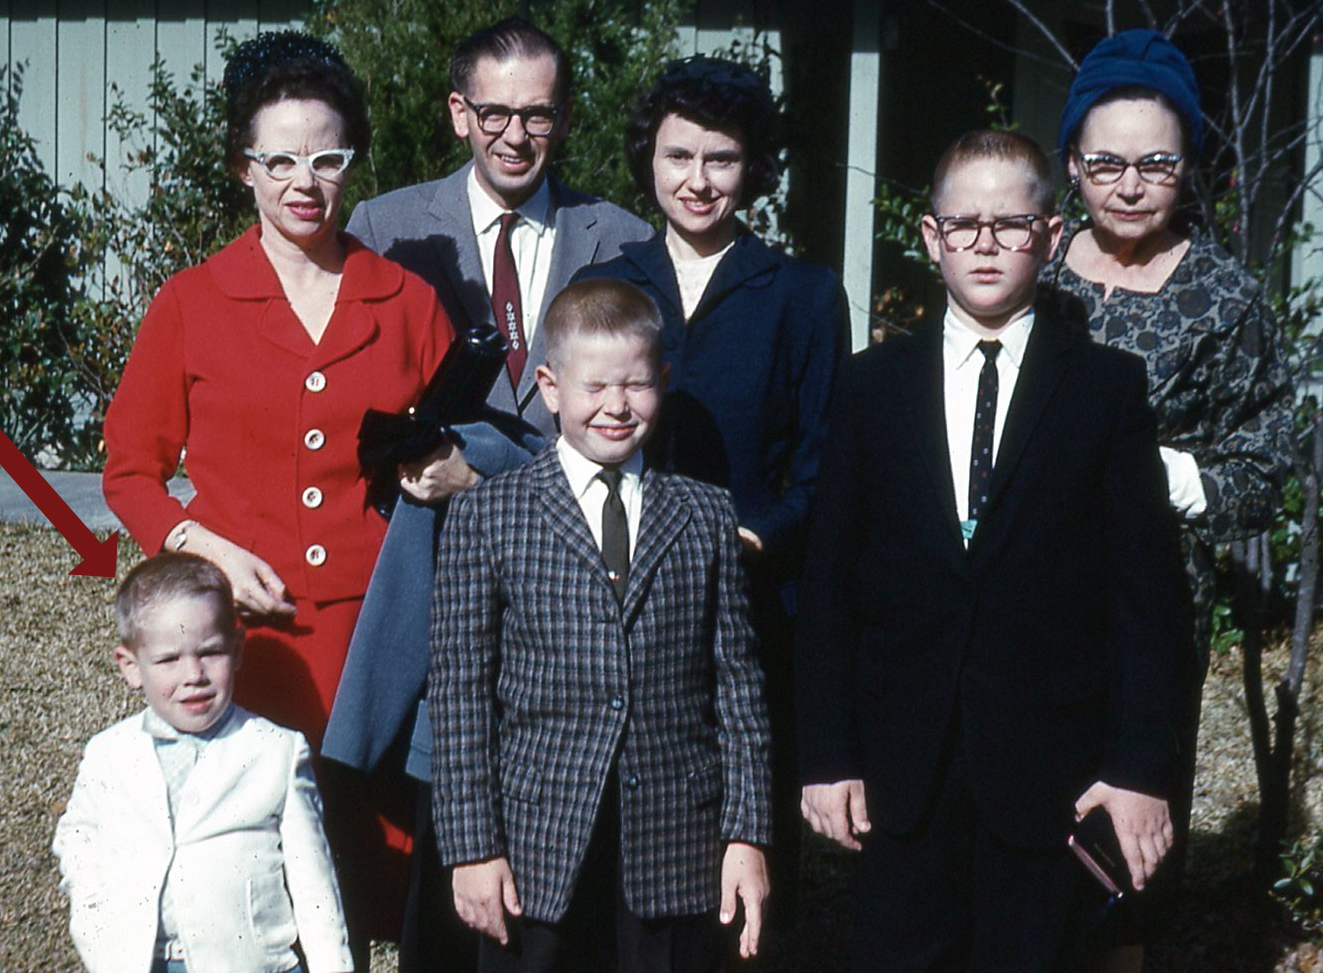 Family picture 1960 style